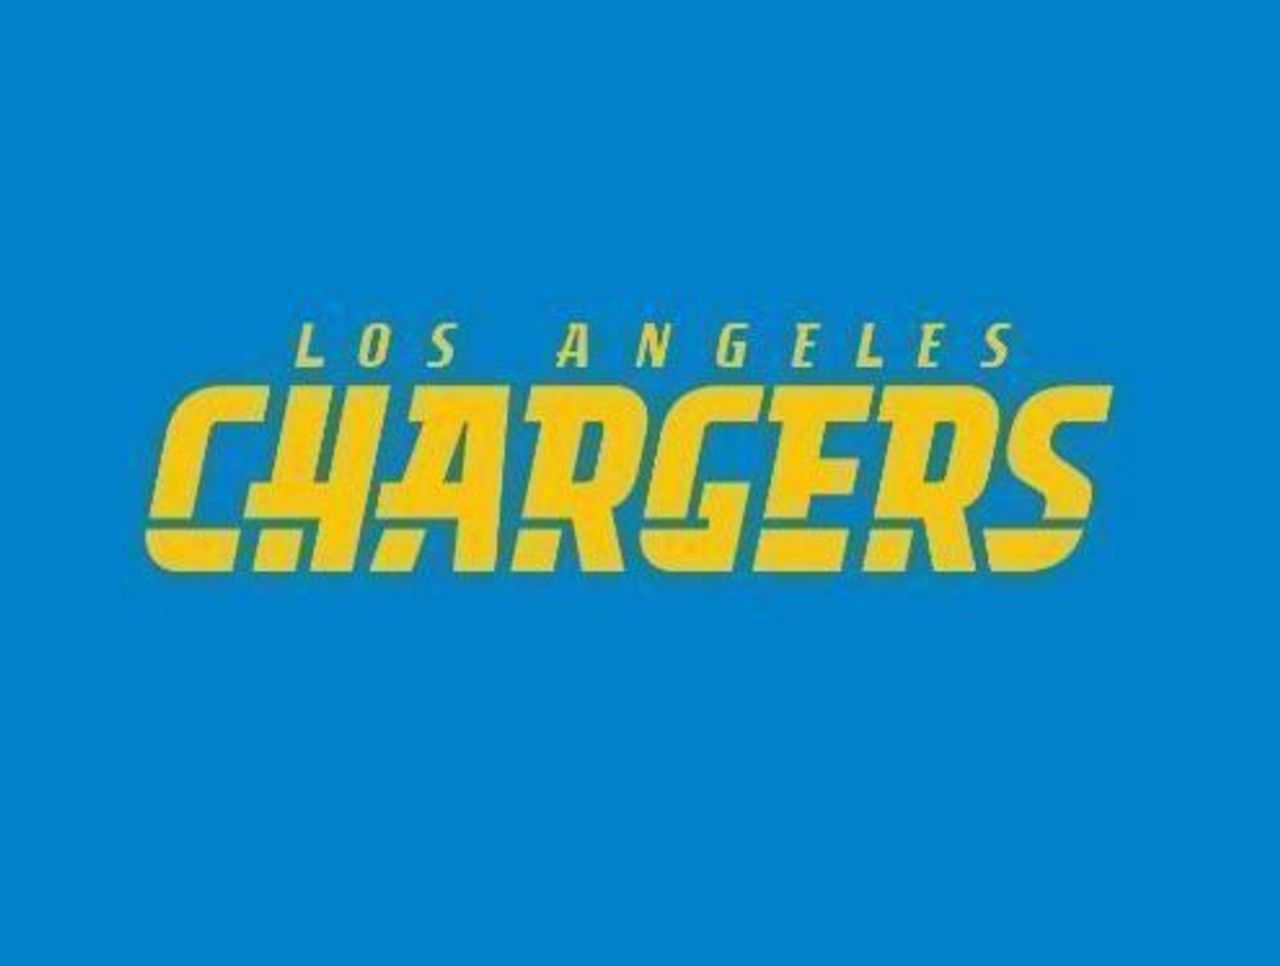 Chargers Logo Booed At Lakers Clippers Game Thescore Com